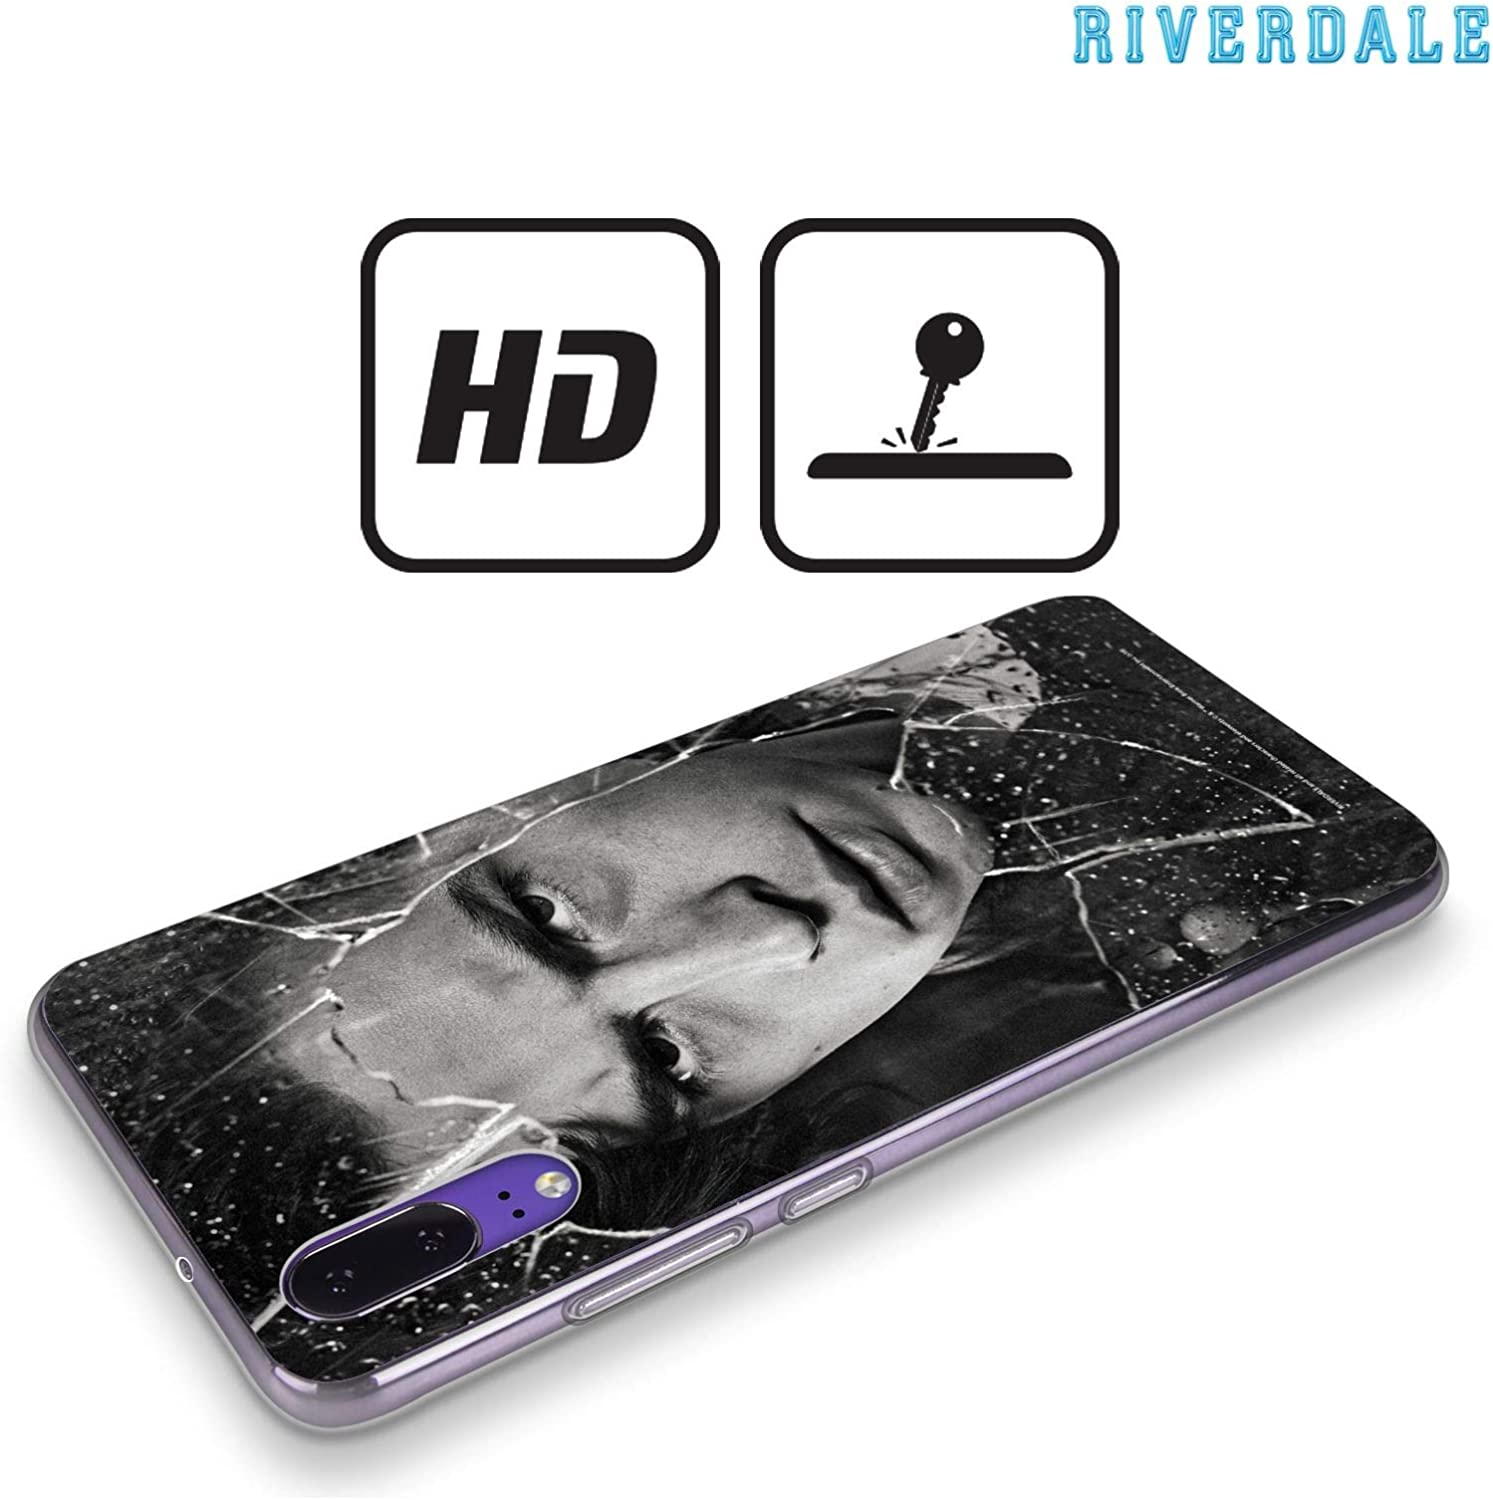 Official Riverdale Jughead Jones Broken Glass Portraits Soft Gel Case Compatible for Huawei P30 Lite/Nova 4e: Amazon.es: Electrónica